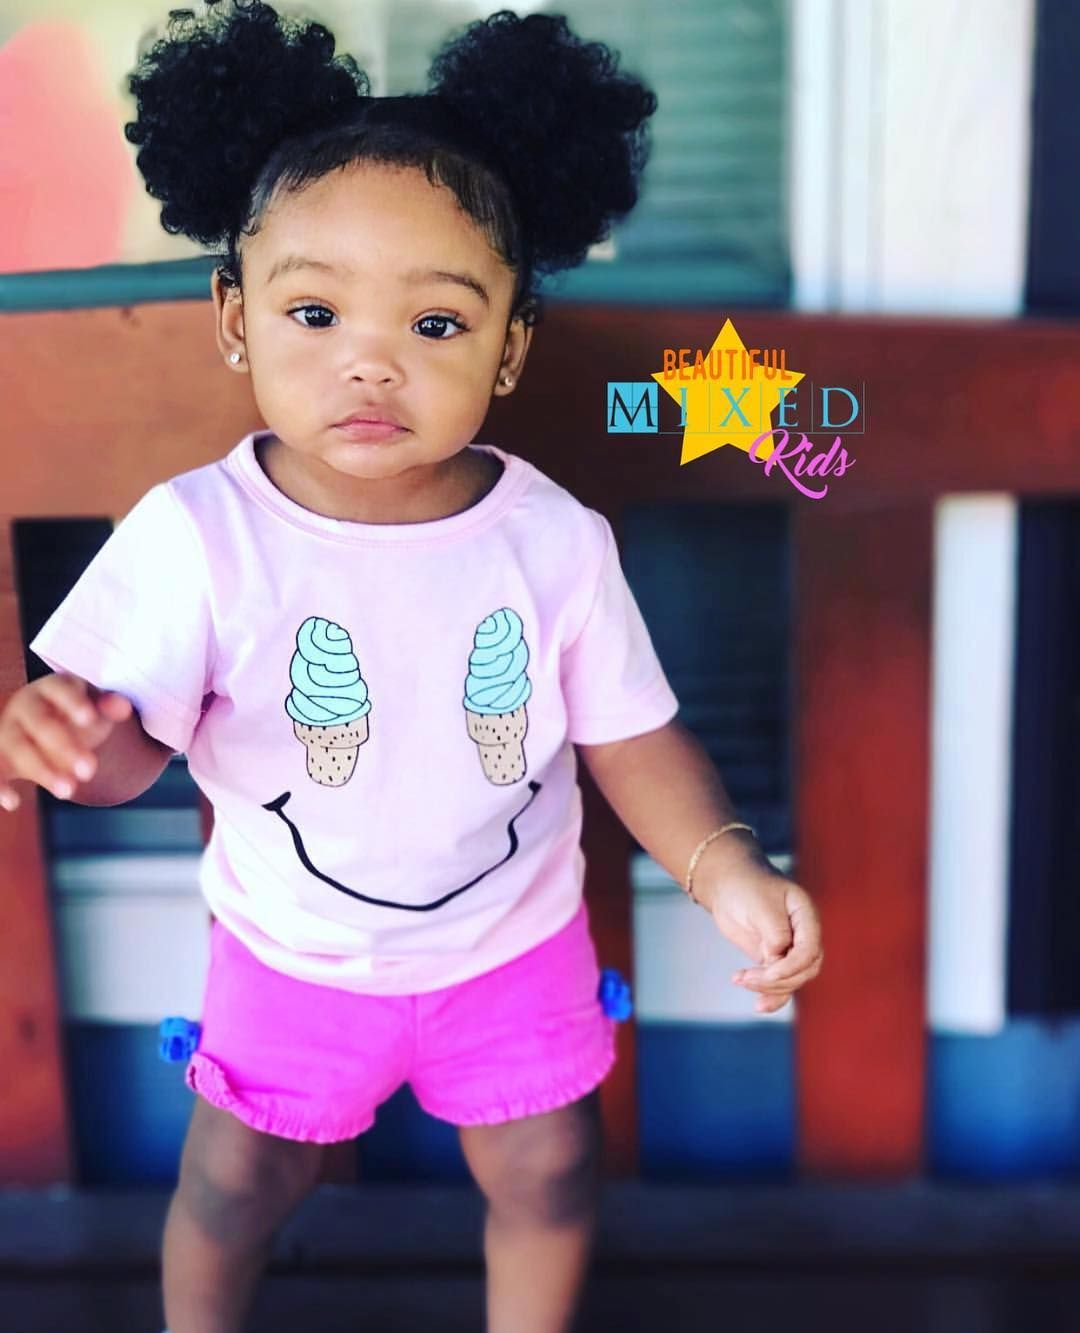 Beautiful Mixed Kids On Instagram Camilla Marie 1 Year